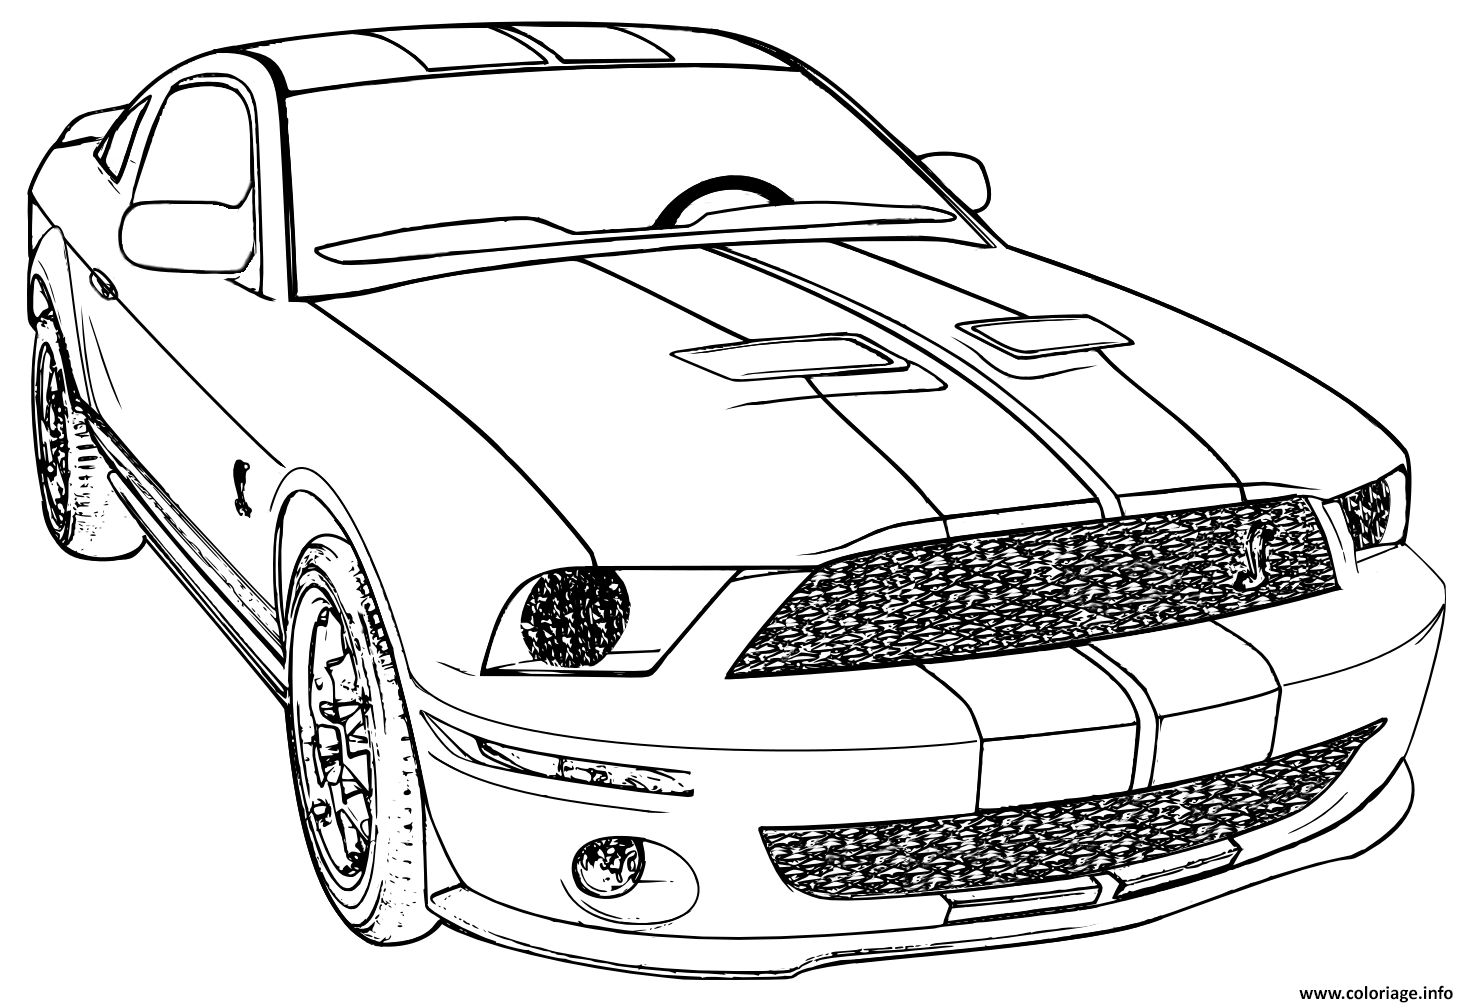 coloriage ford mustang voiture de course dessin